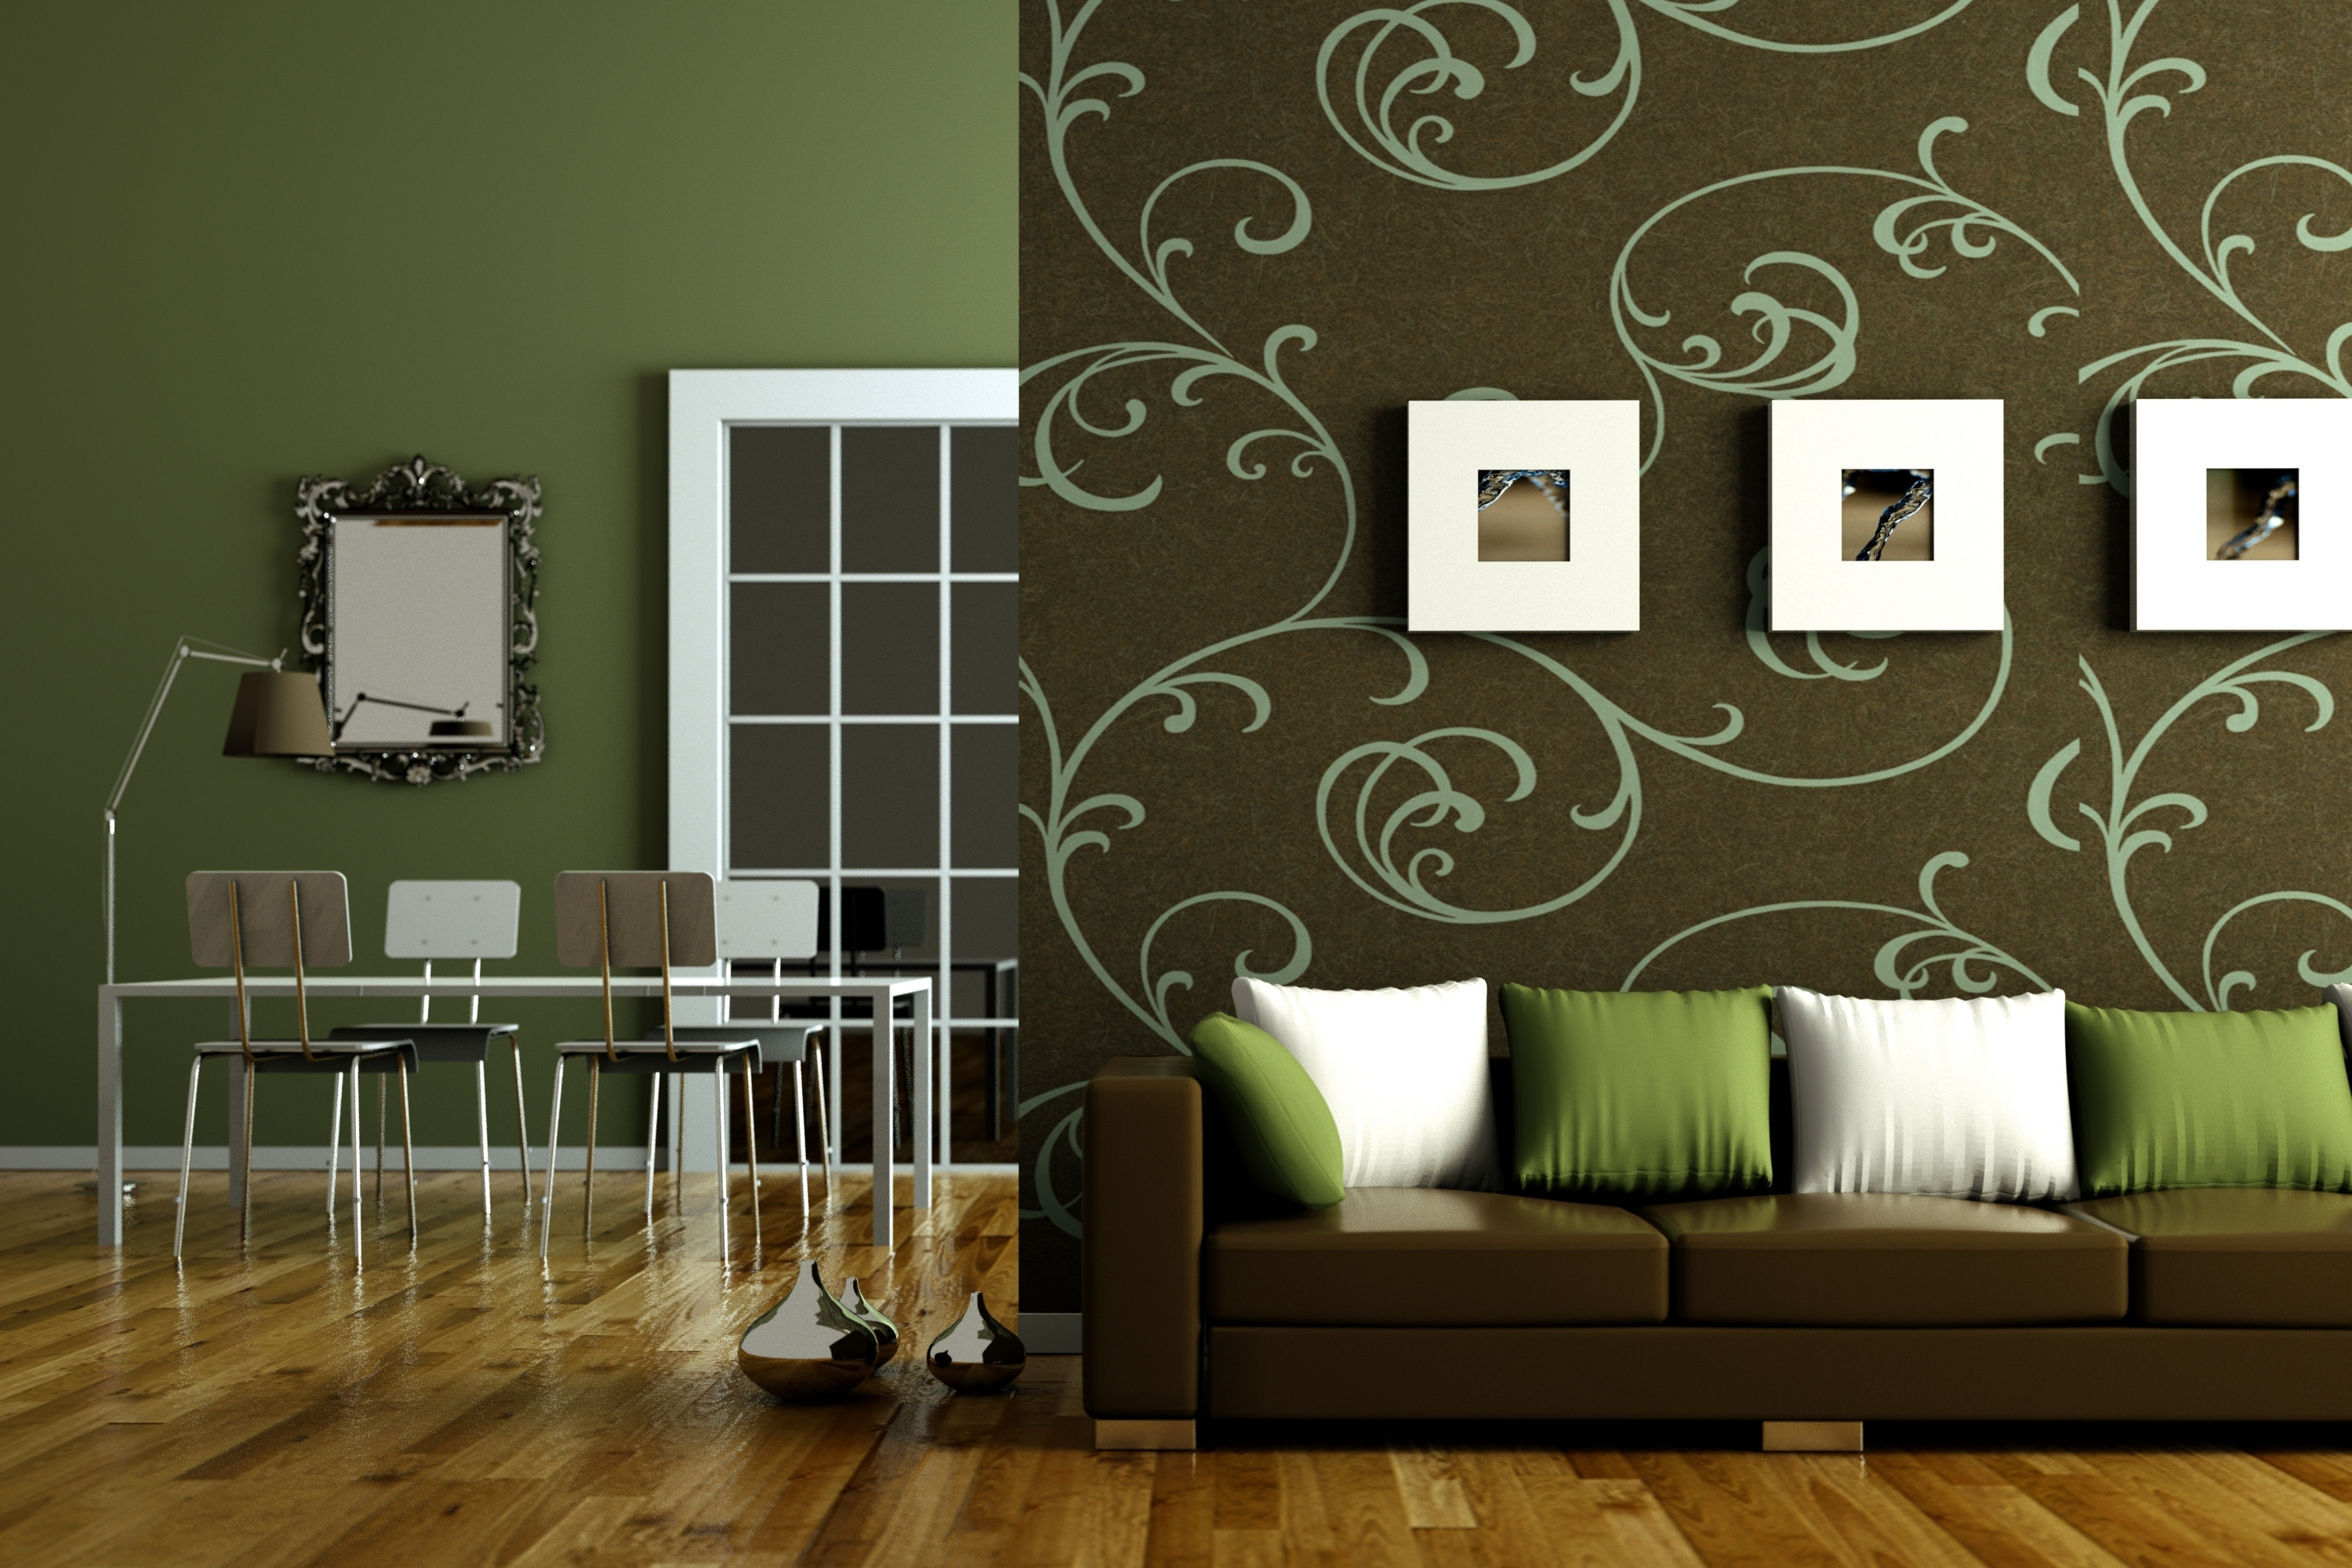 Wallpaper Sofa Pilloes Pics Table Chairs Lamp Decorating Your Living Room.  Surprising Wallpaper Design For